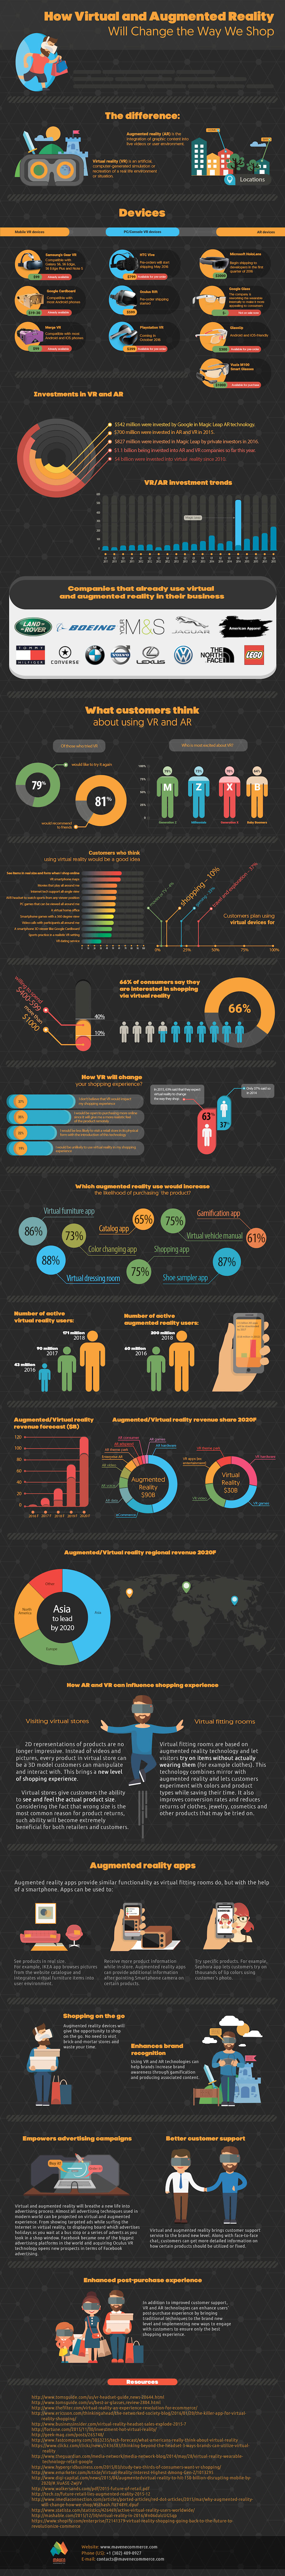 [Infographic] How Virtual and Augmented Reality Will Change the Way We Shop - An Infographic from Convert.com